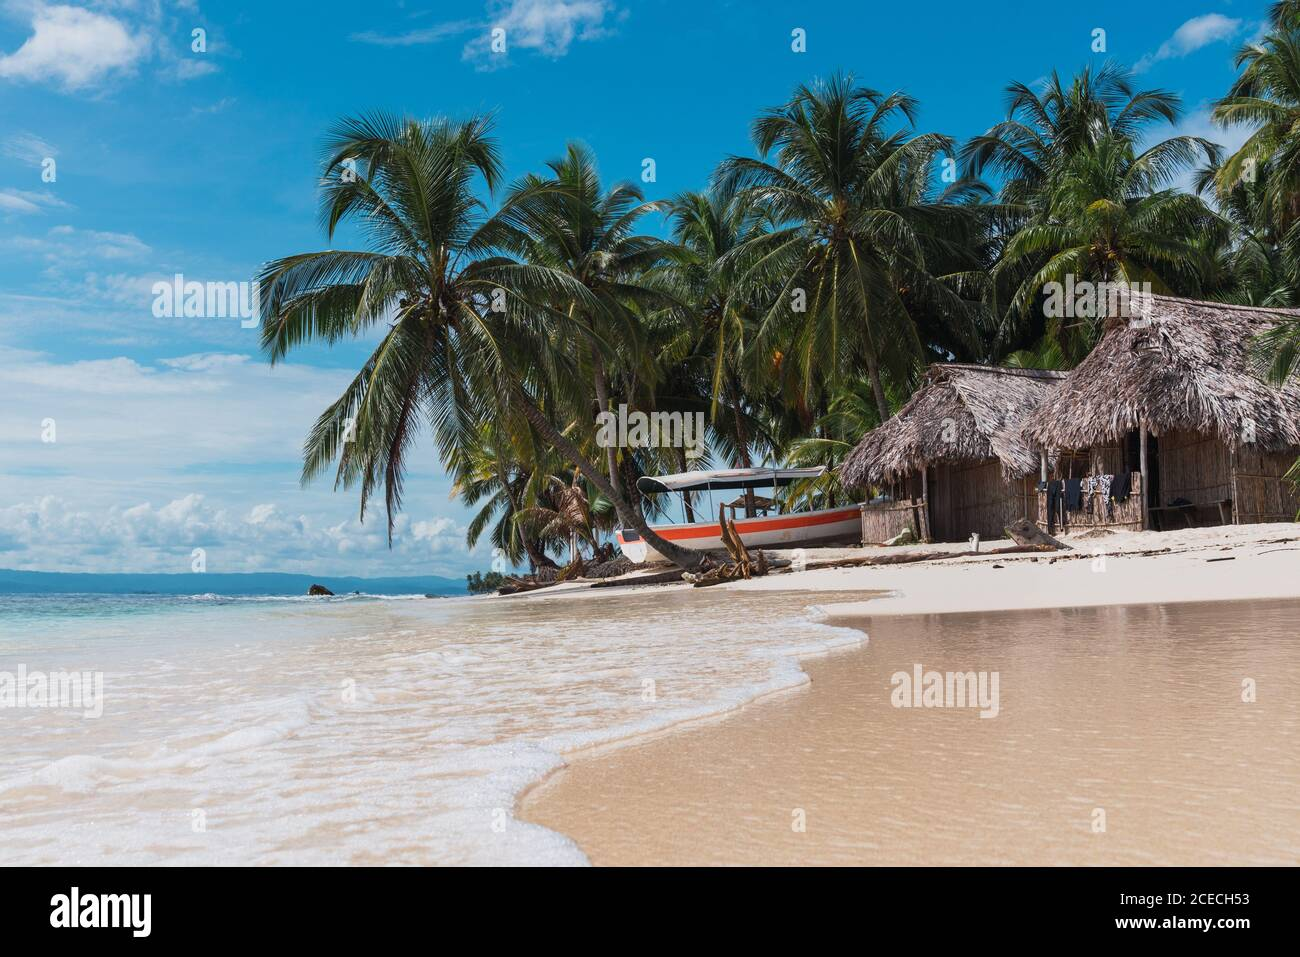 Picturesque view of huts, boat and tropical forest on sand beach near sea and blue sky in San Blas islands, Panama Stock Photo